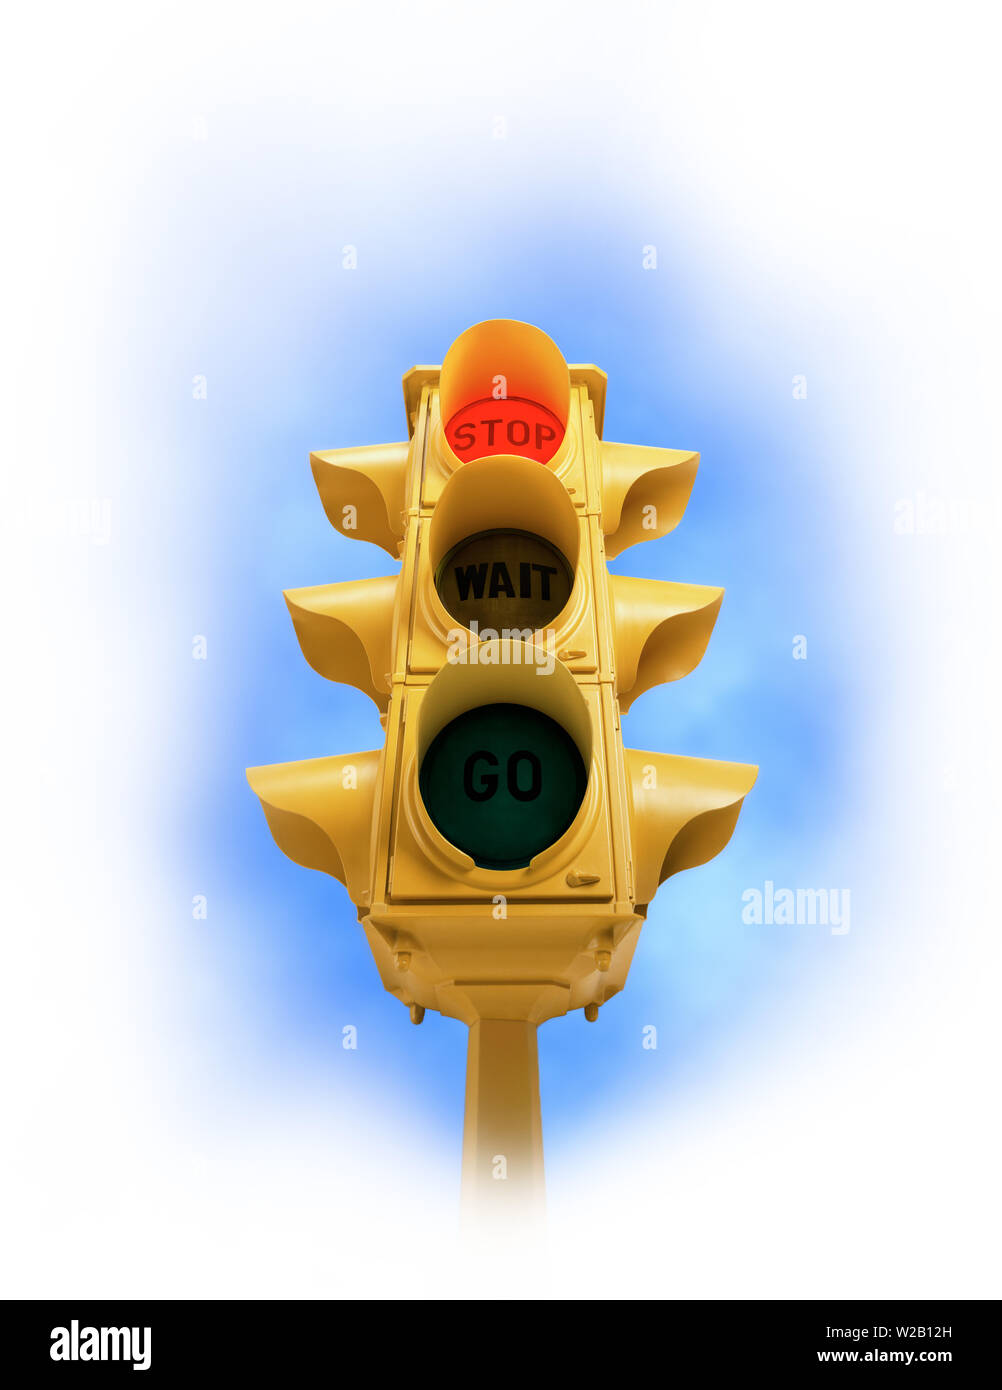 Upward view of  tall vintage yellow traffic signal with red STOP light on white vignette background - Stock Image